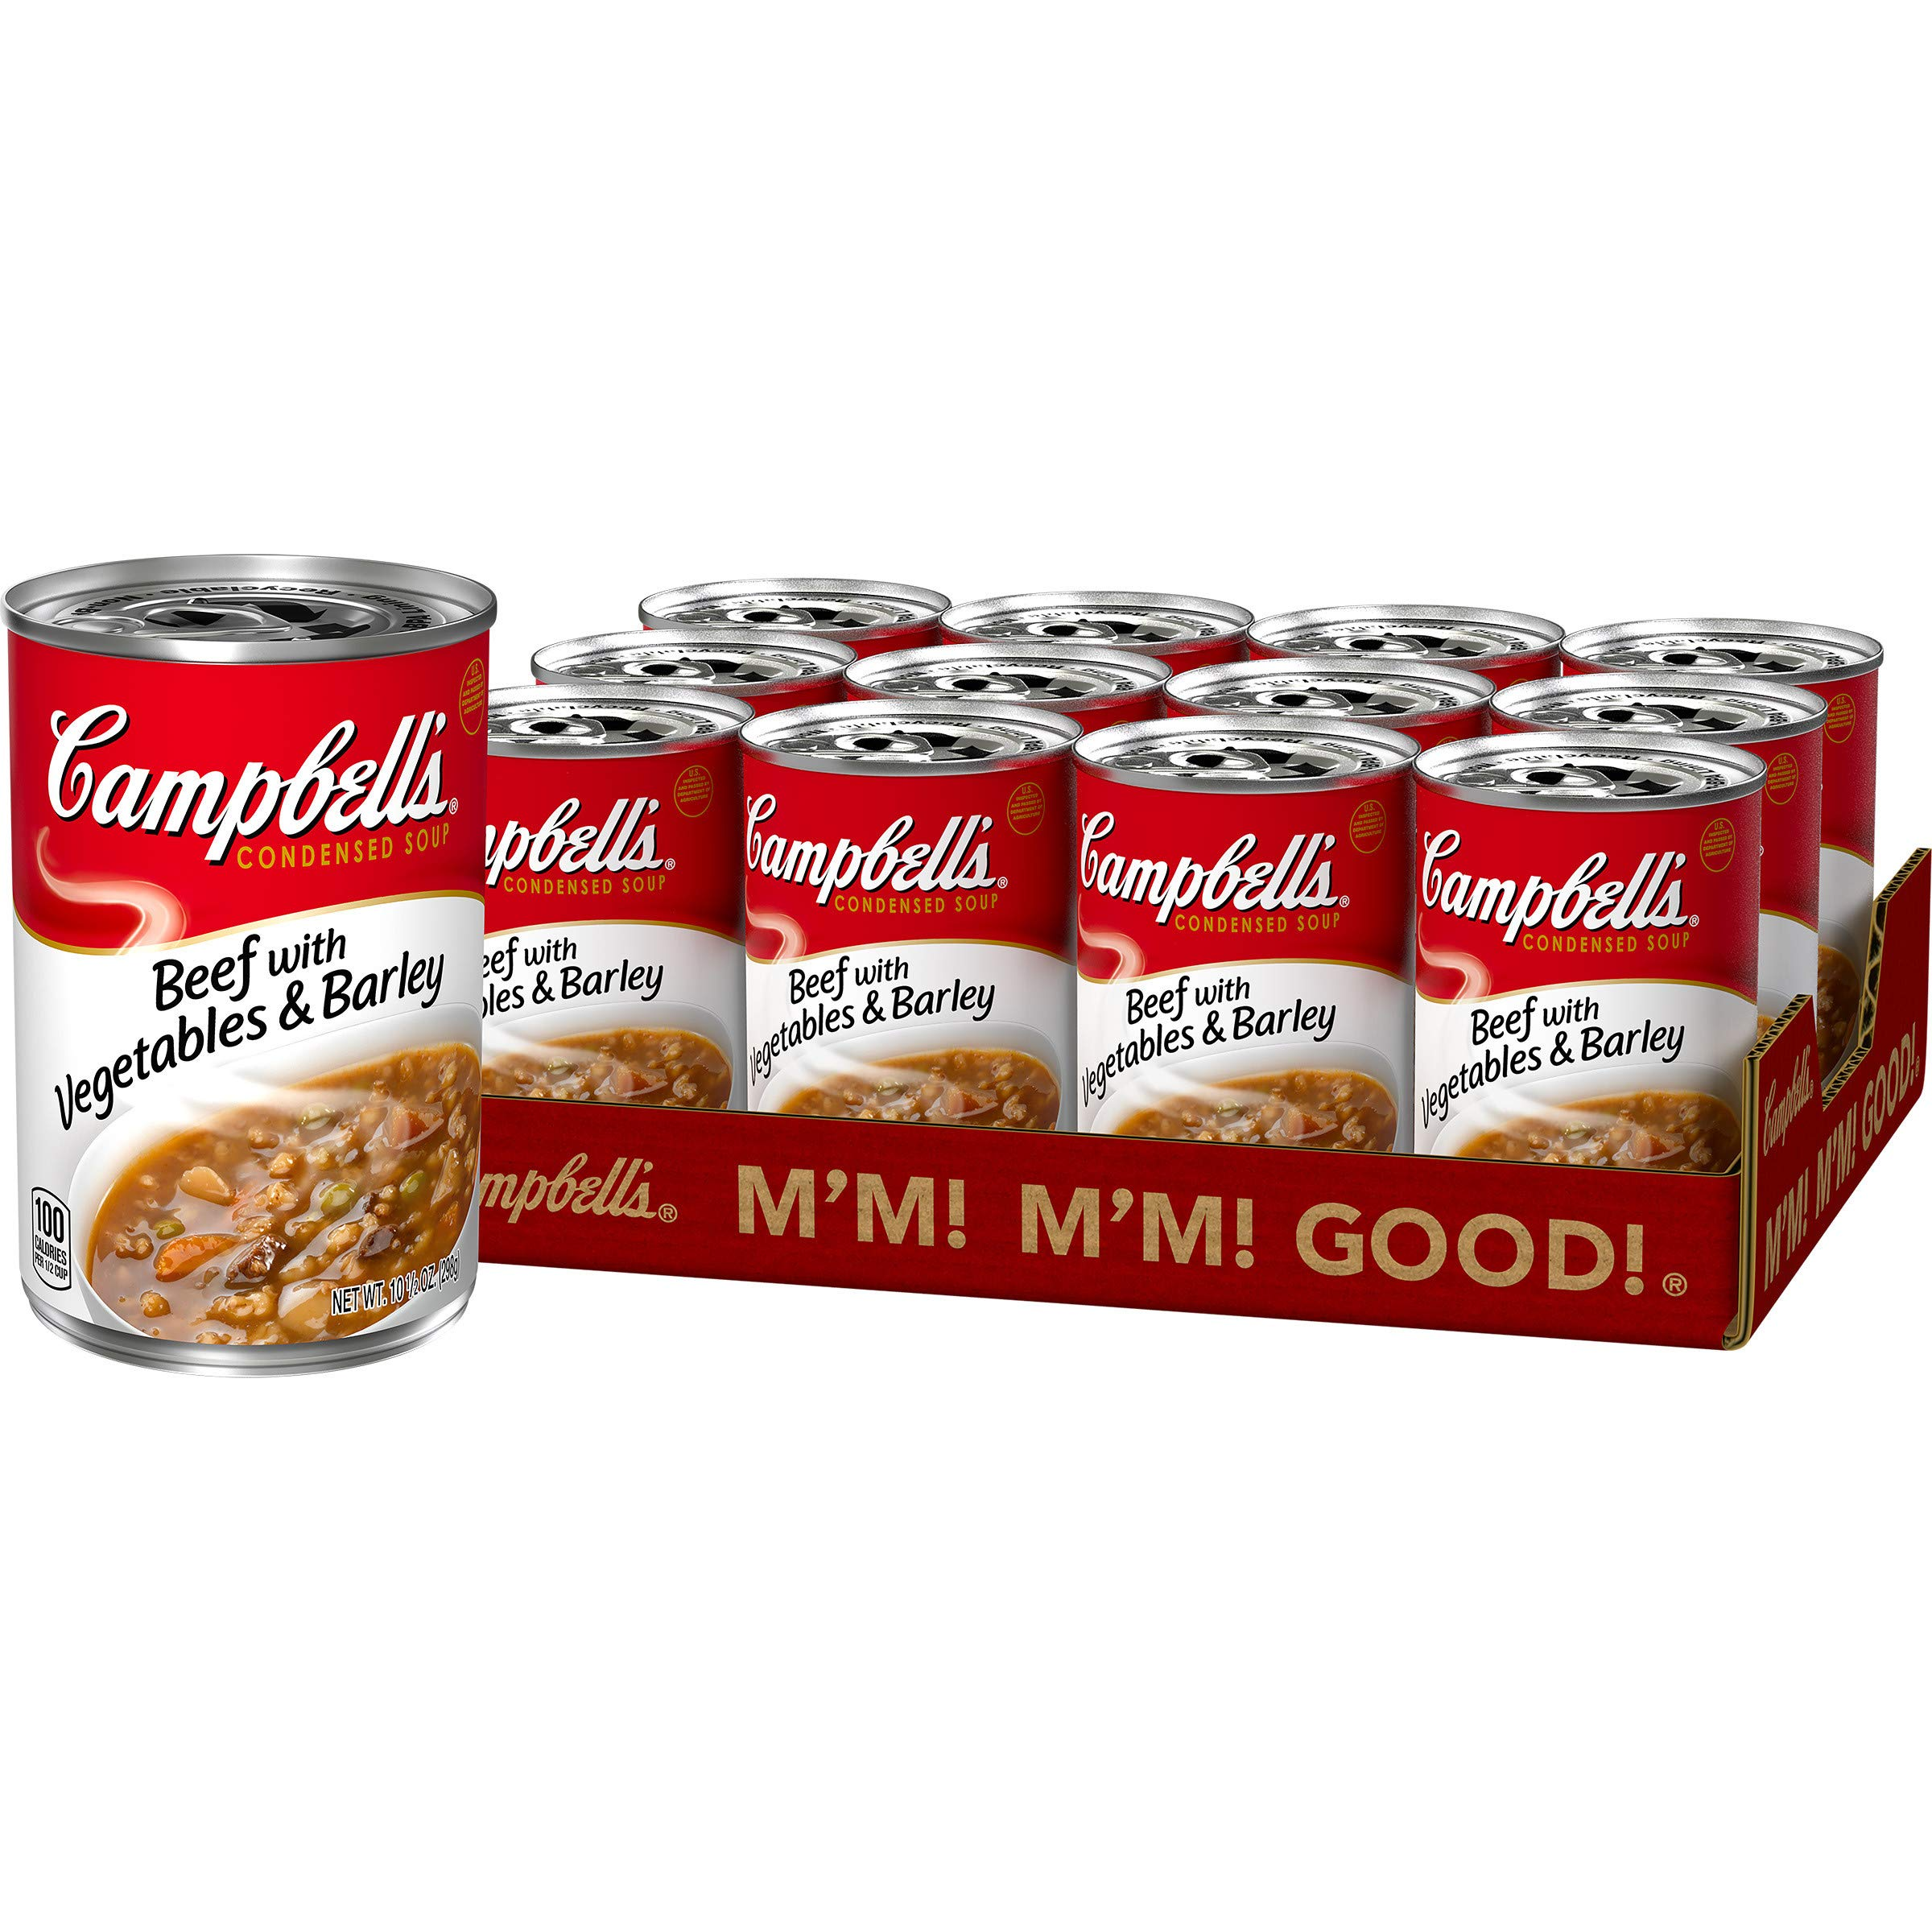 Campbell'sCondensed Beef with Vegetables & Barley Soup, 10.5 Ounce (Pack of 12)